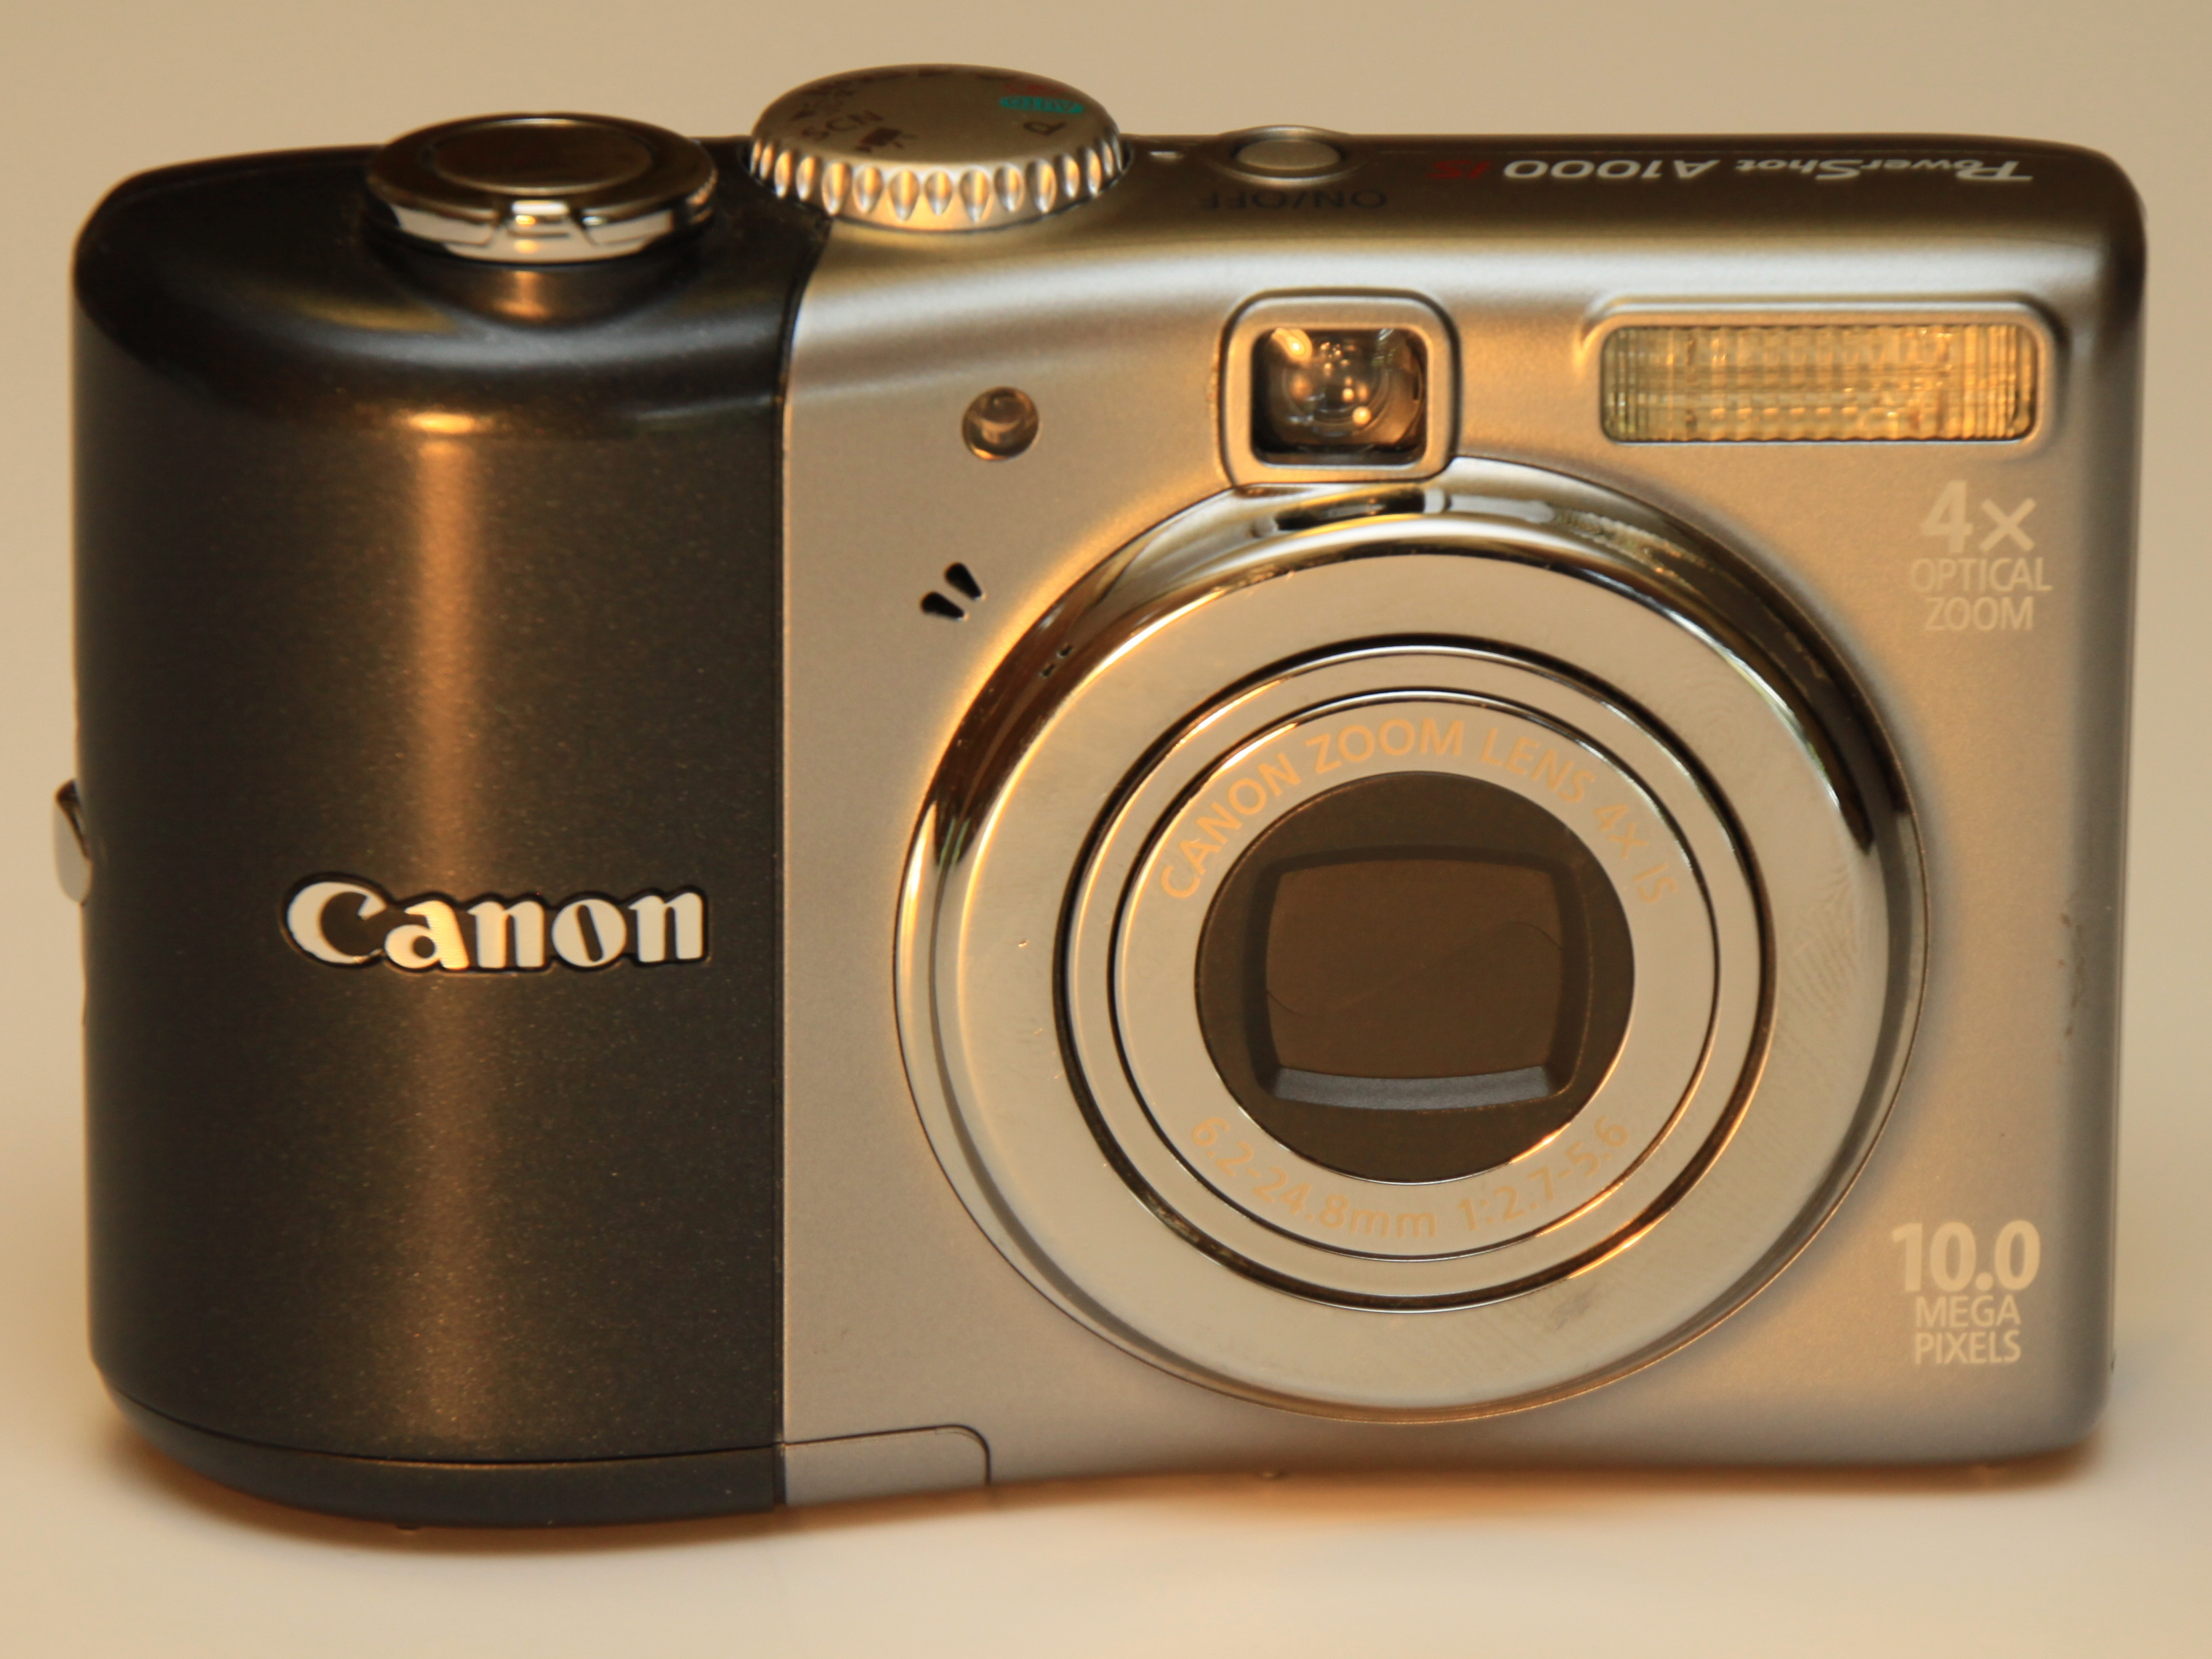 canon powershot a1000 is case disassembly ifixit repair guide rh ifixit com Canon Camera User Manual Canon T2i Manual